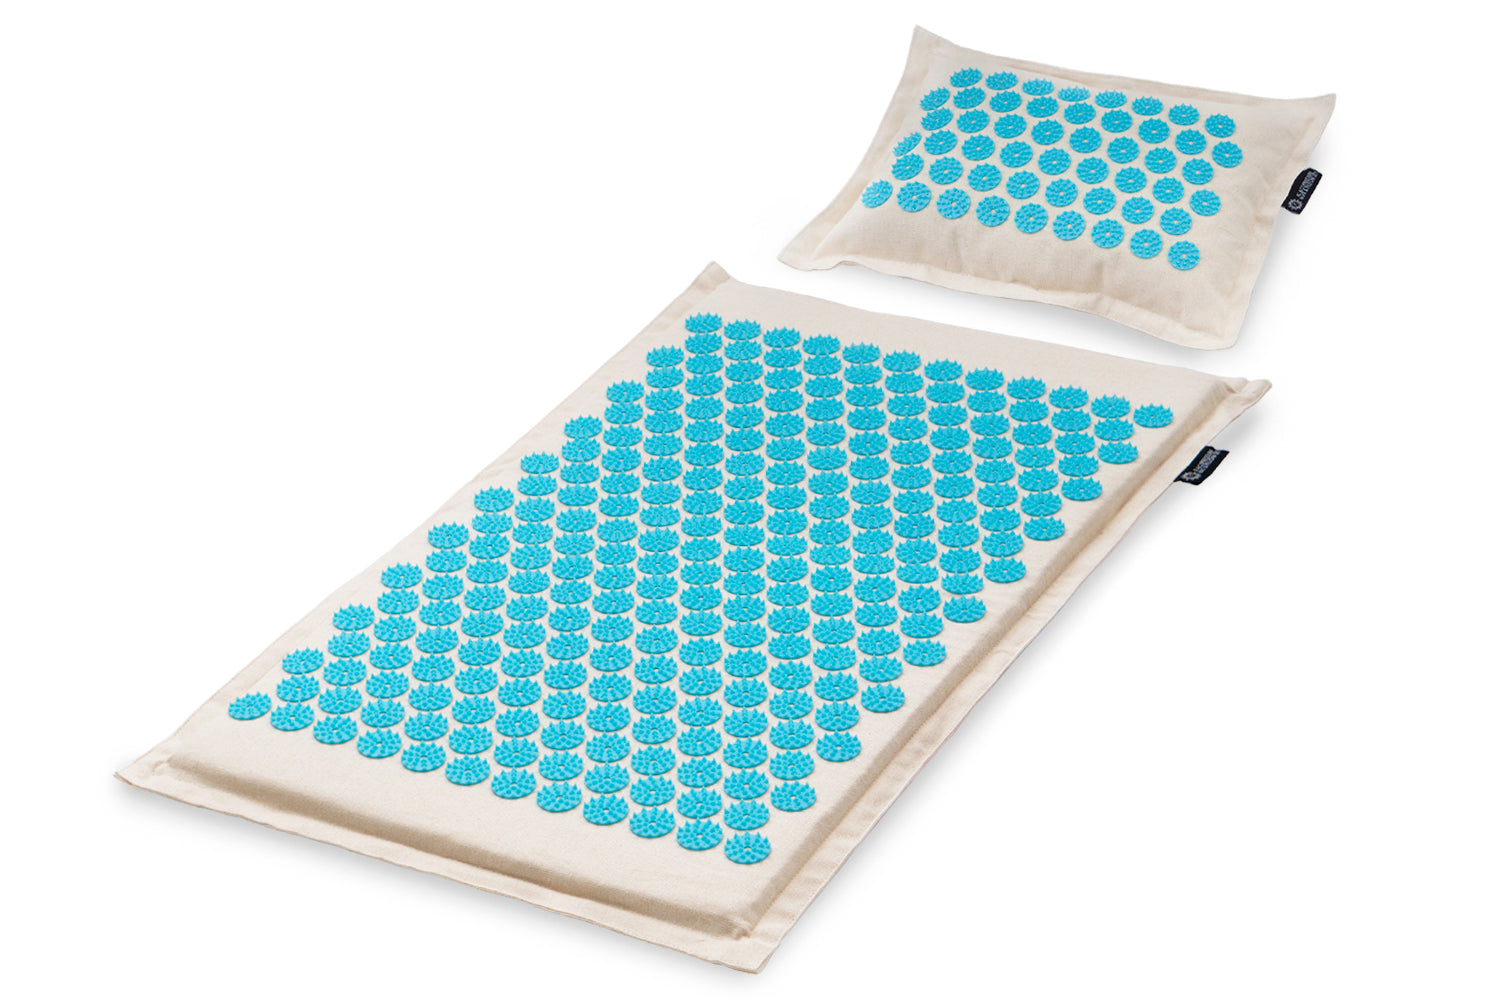 Paradise Cove Ki Acupressure Mat and Pillow Set